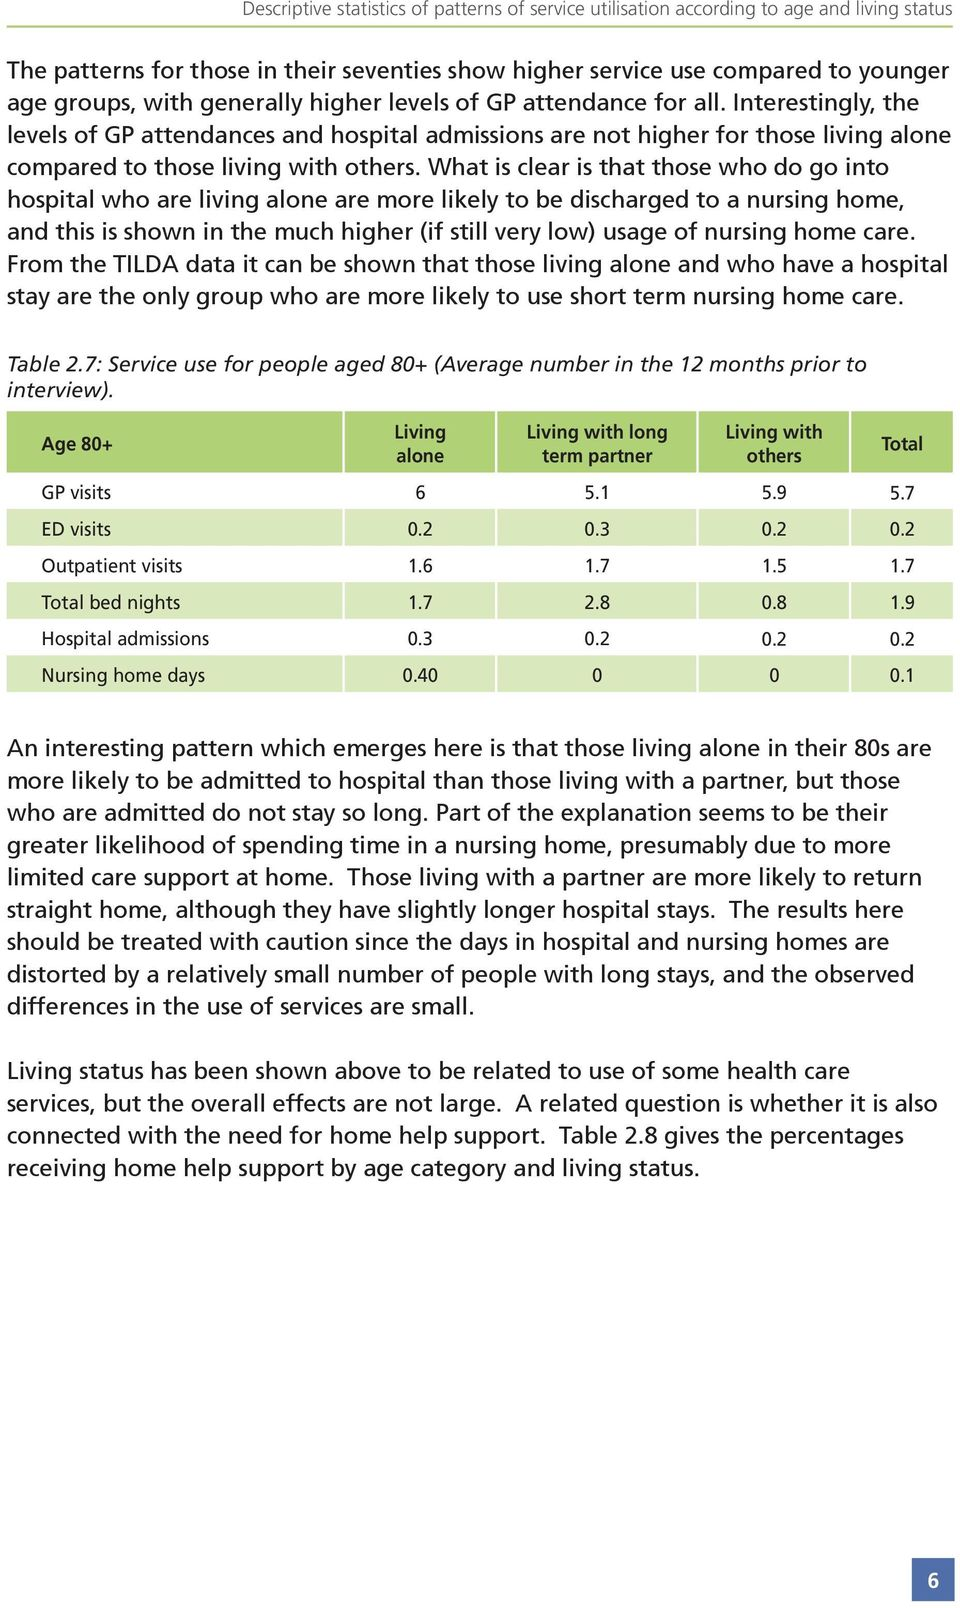 What is clear is that those who do go into hospital who are living alone are more likely to be discharged to a nursing home, and this is shown in the much higher (if still very low) usage of nursing